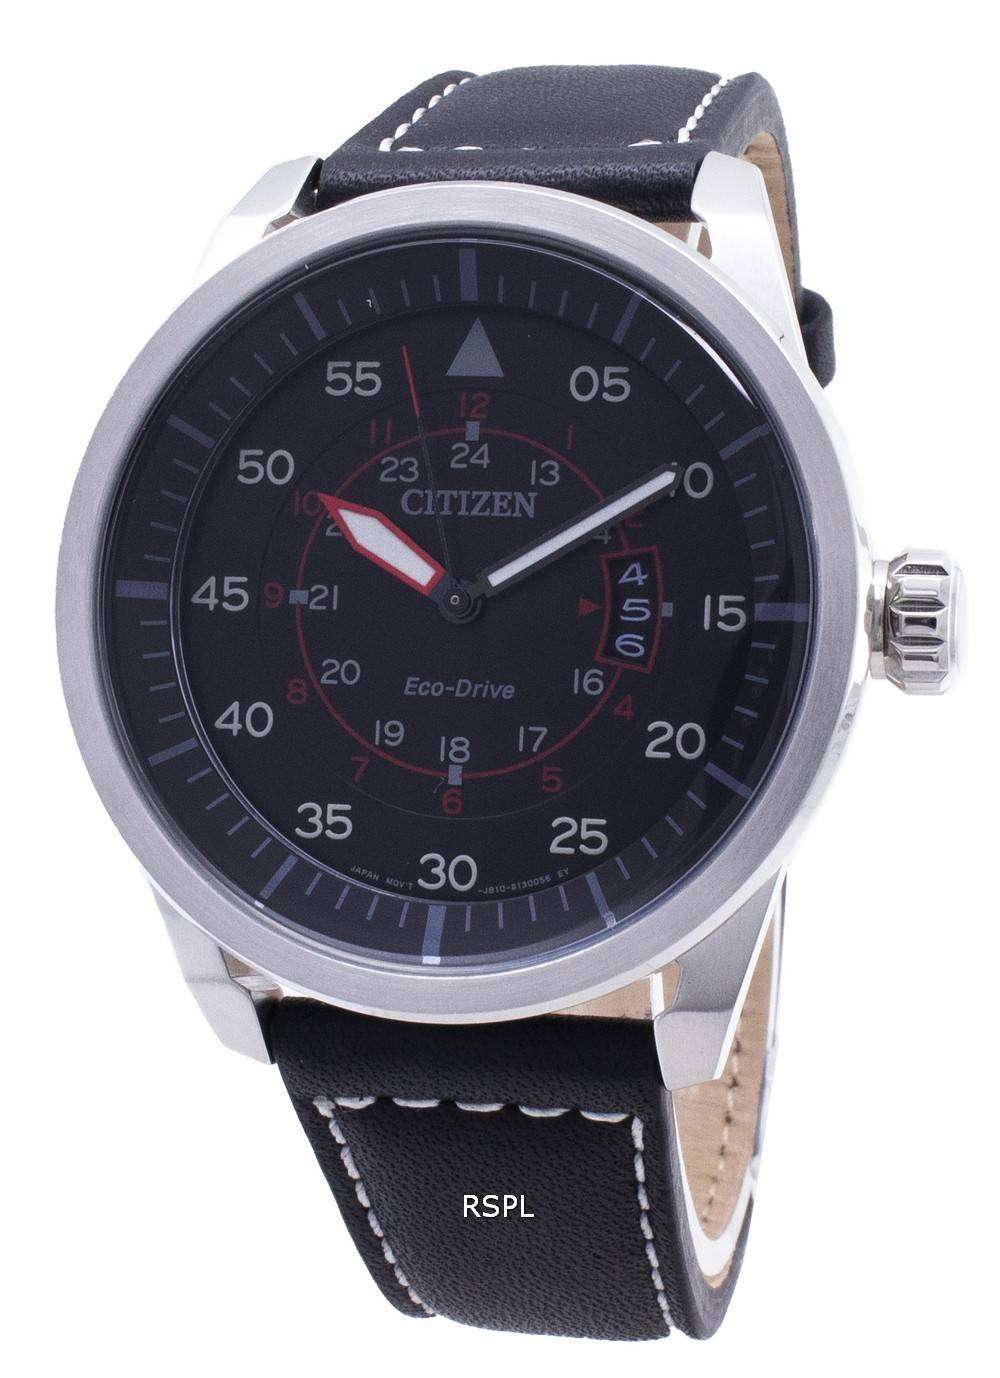 info for 0a9f6 1b001 Citizen Eco-Drive Aviator Power Reserve AW1360-04E Mens Watch